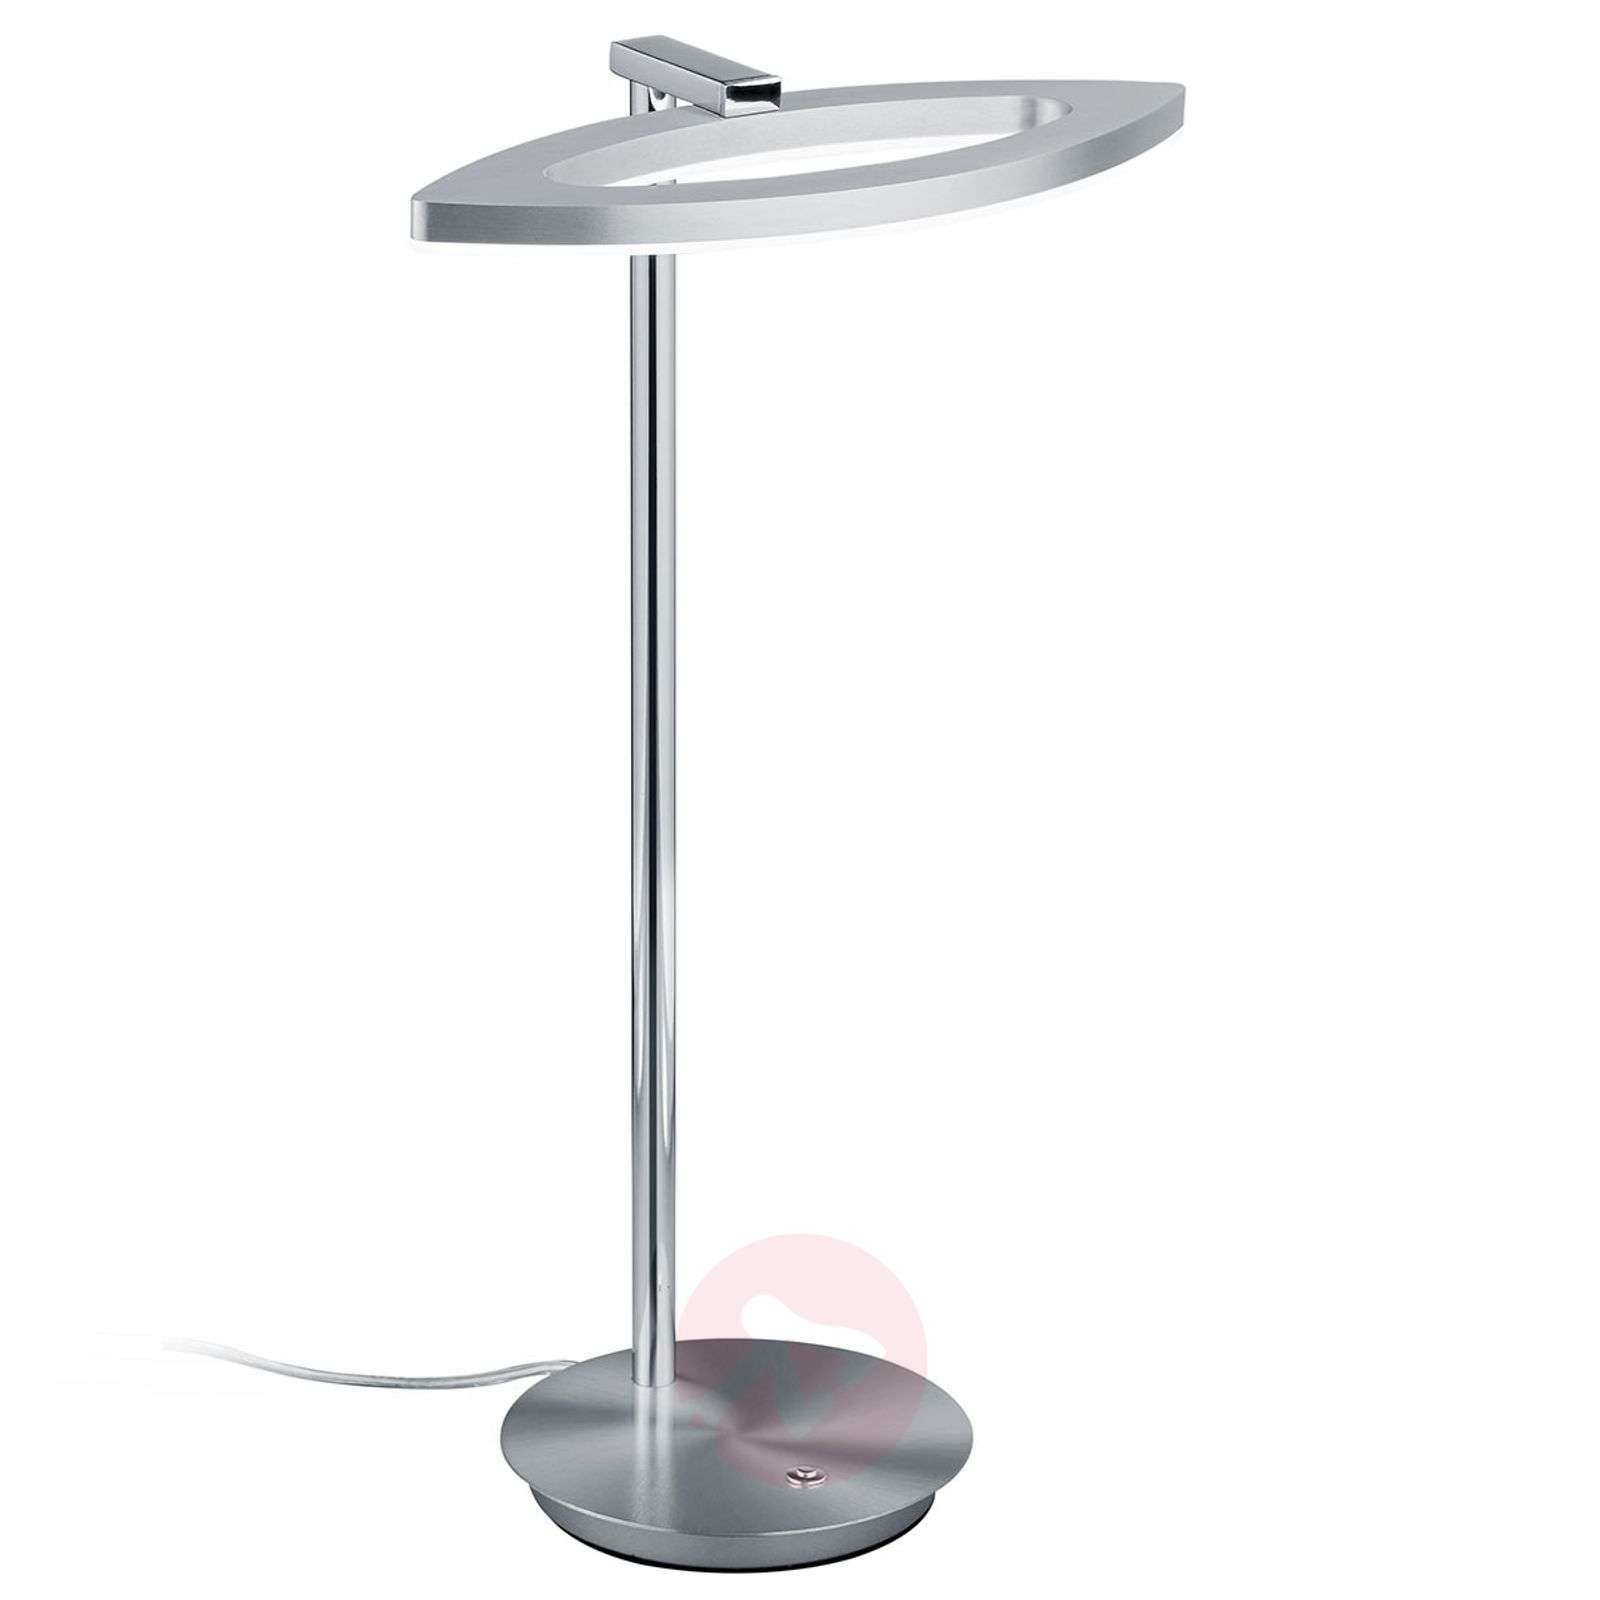 Lampe à poser LED River dimmable au look moderne-1554057-01